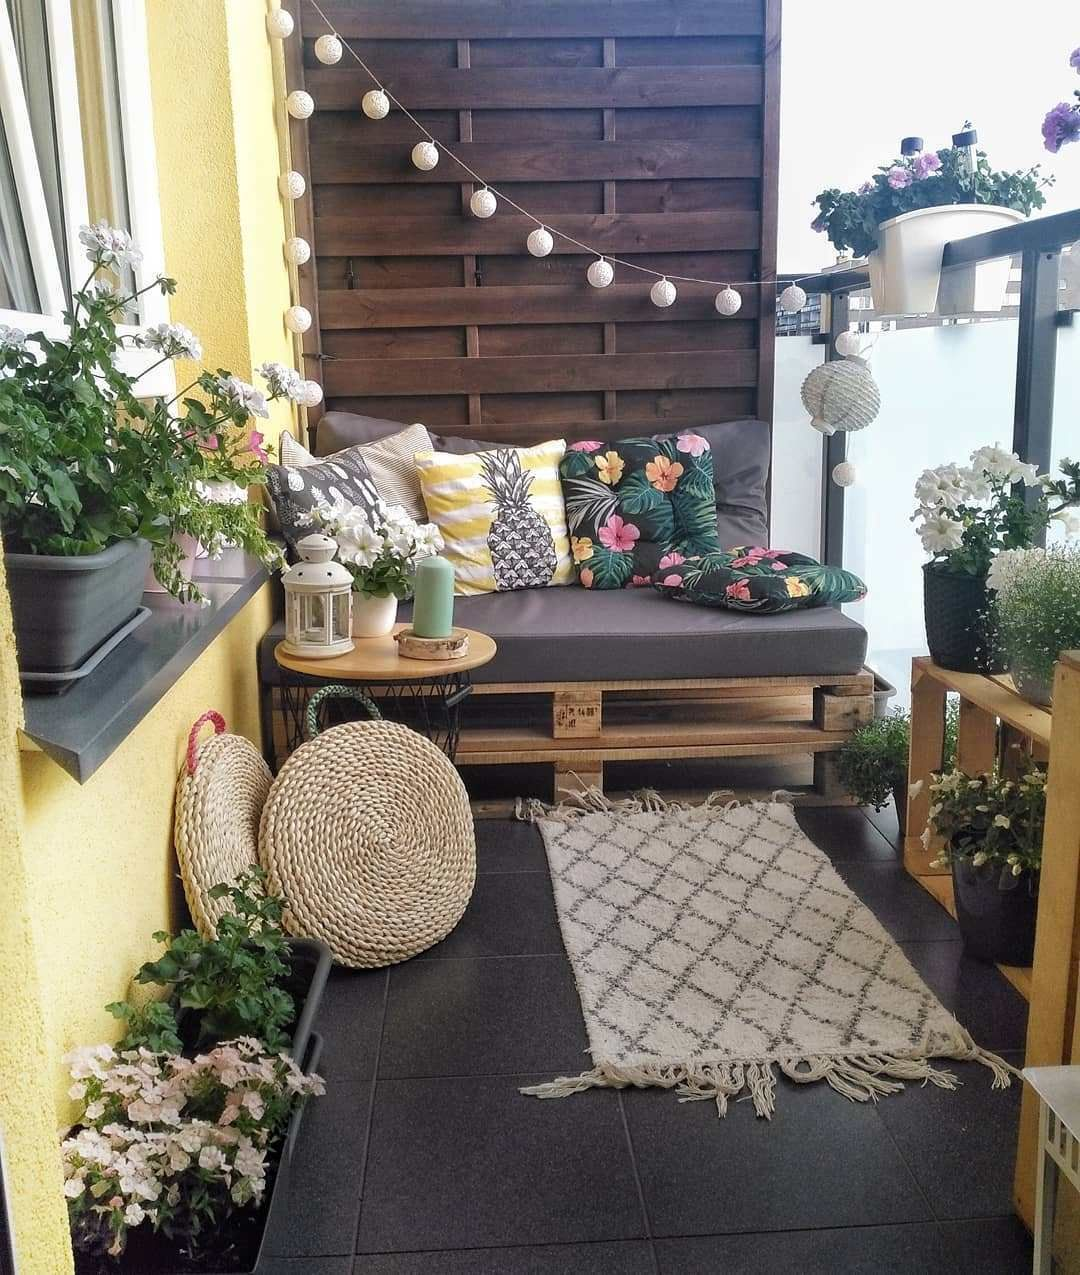 10 Small Balcony Decor Ideas #smallbalconyfurniture